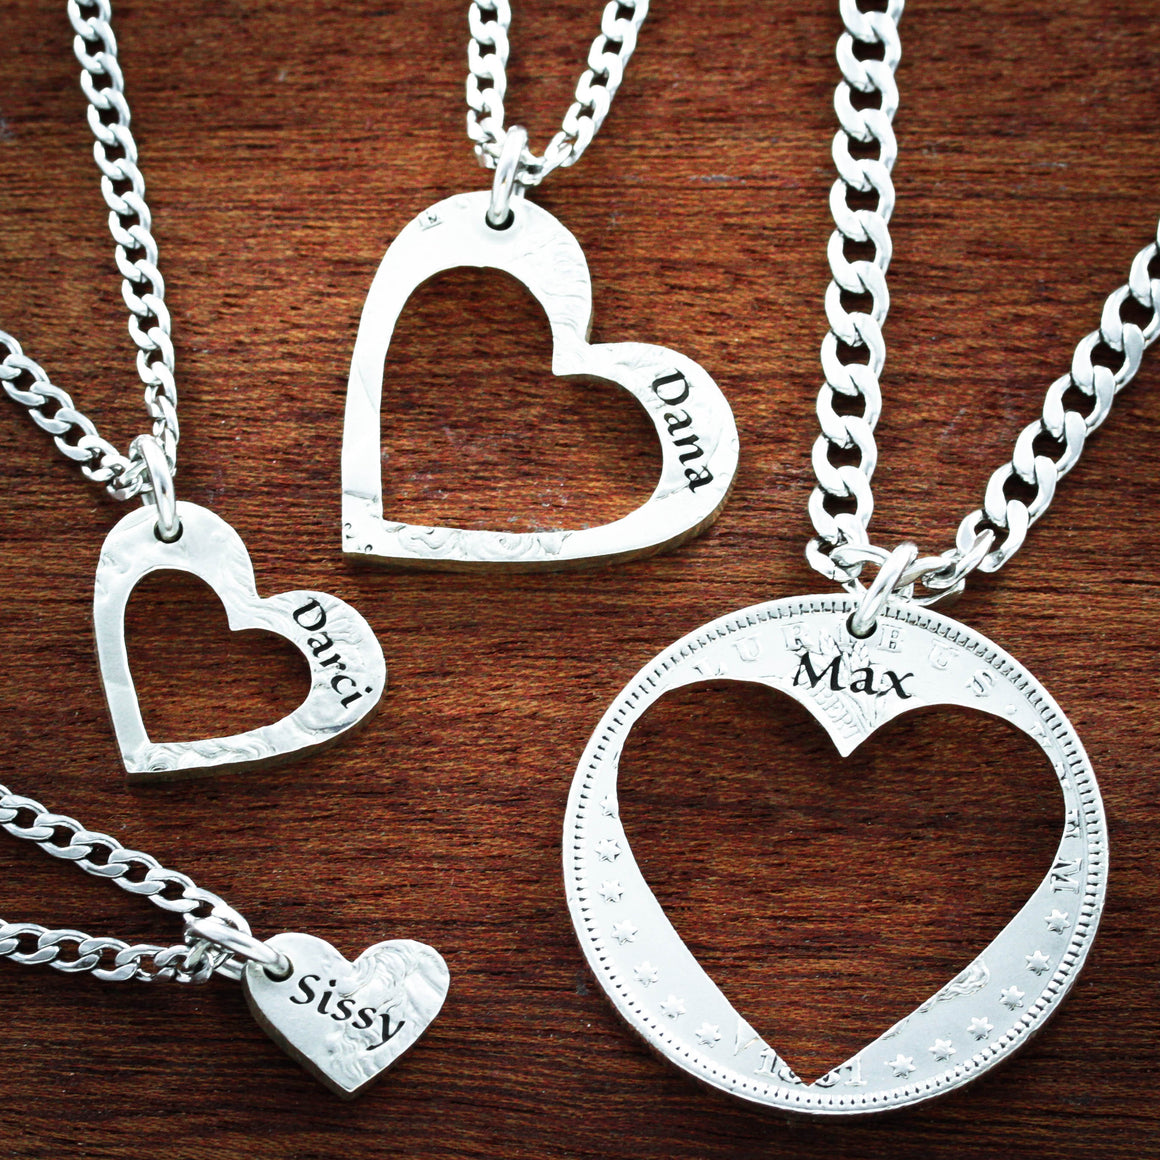 4 Best Friend Heart Necklaces, Custom Names Engraved